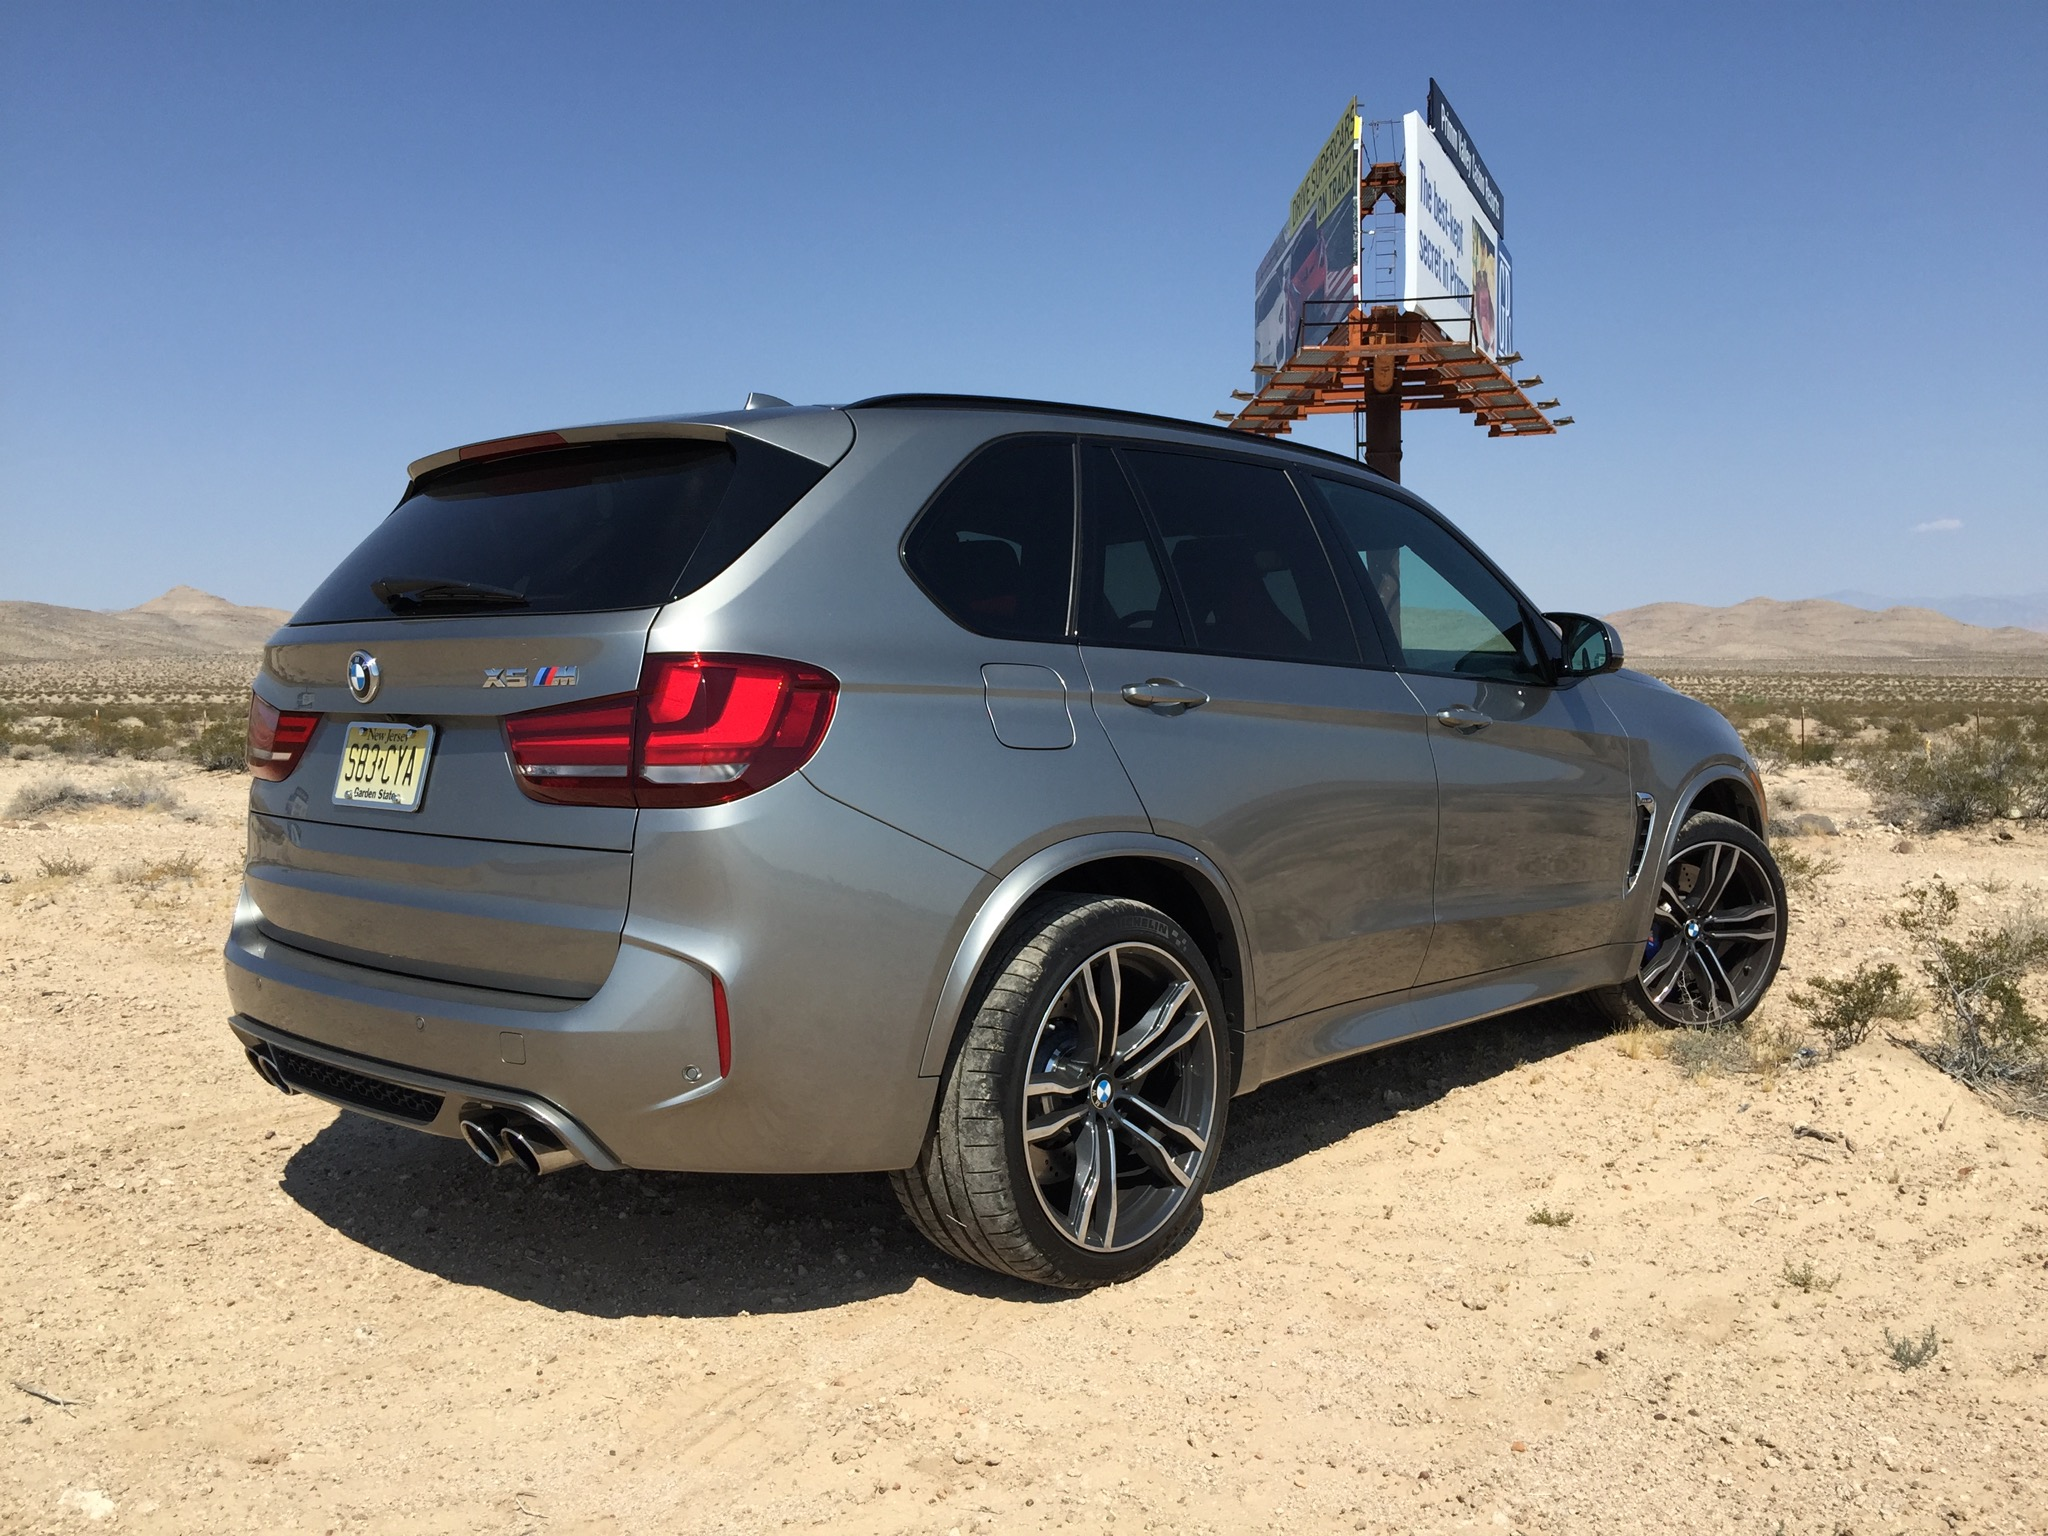 Permalink to Bmw X5 Sdrive Vs Xdrive